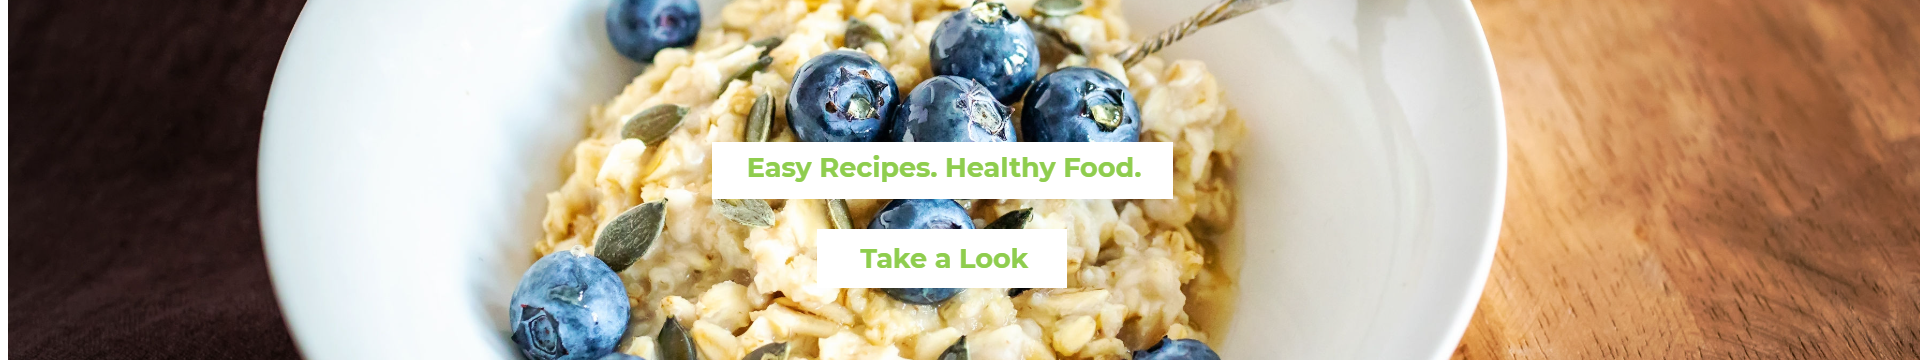 Easy Recipes. Healthy Food.